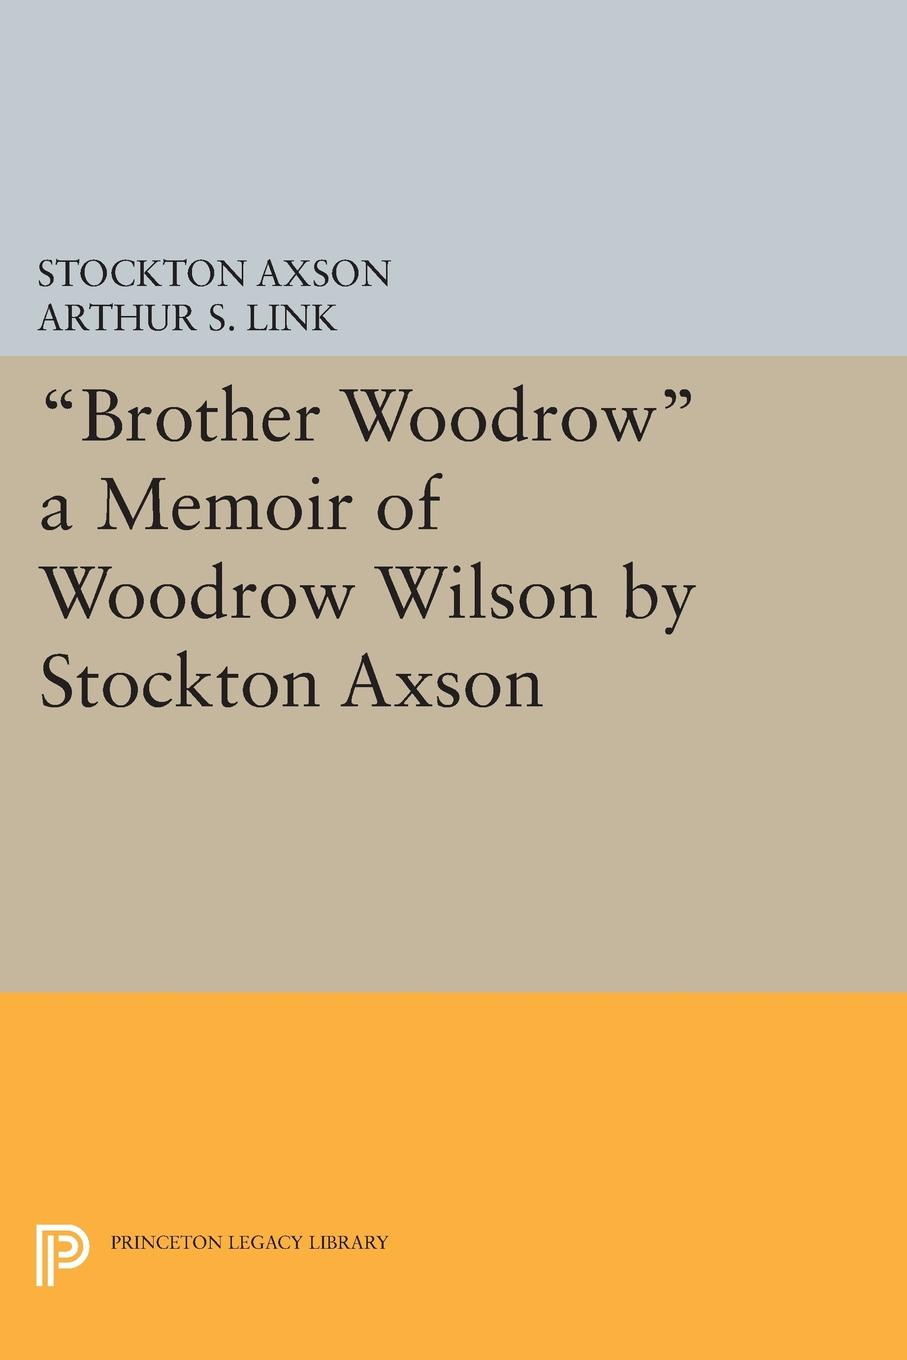 Фото - Brother Woodrow. A Memoir of Woodrow Wilson by Stockton Axson woodrow wilson war labor and peace some recent addresses and writings of president wilson issued by the committee on public information washington d c